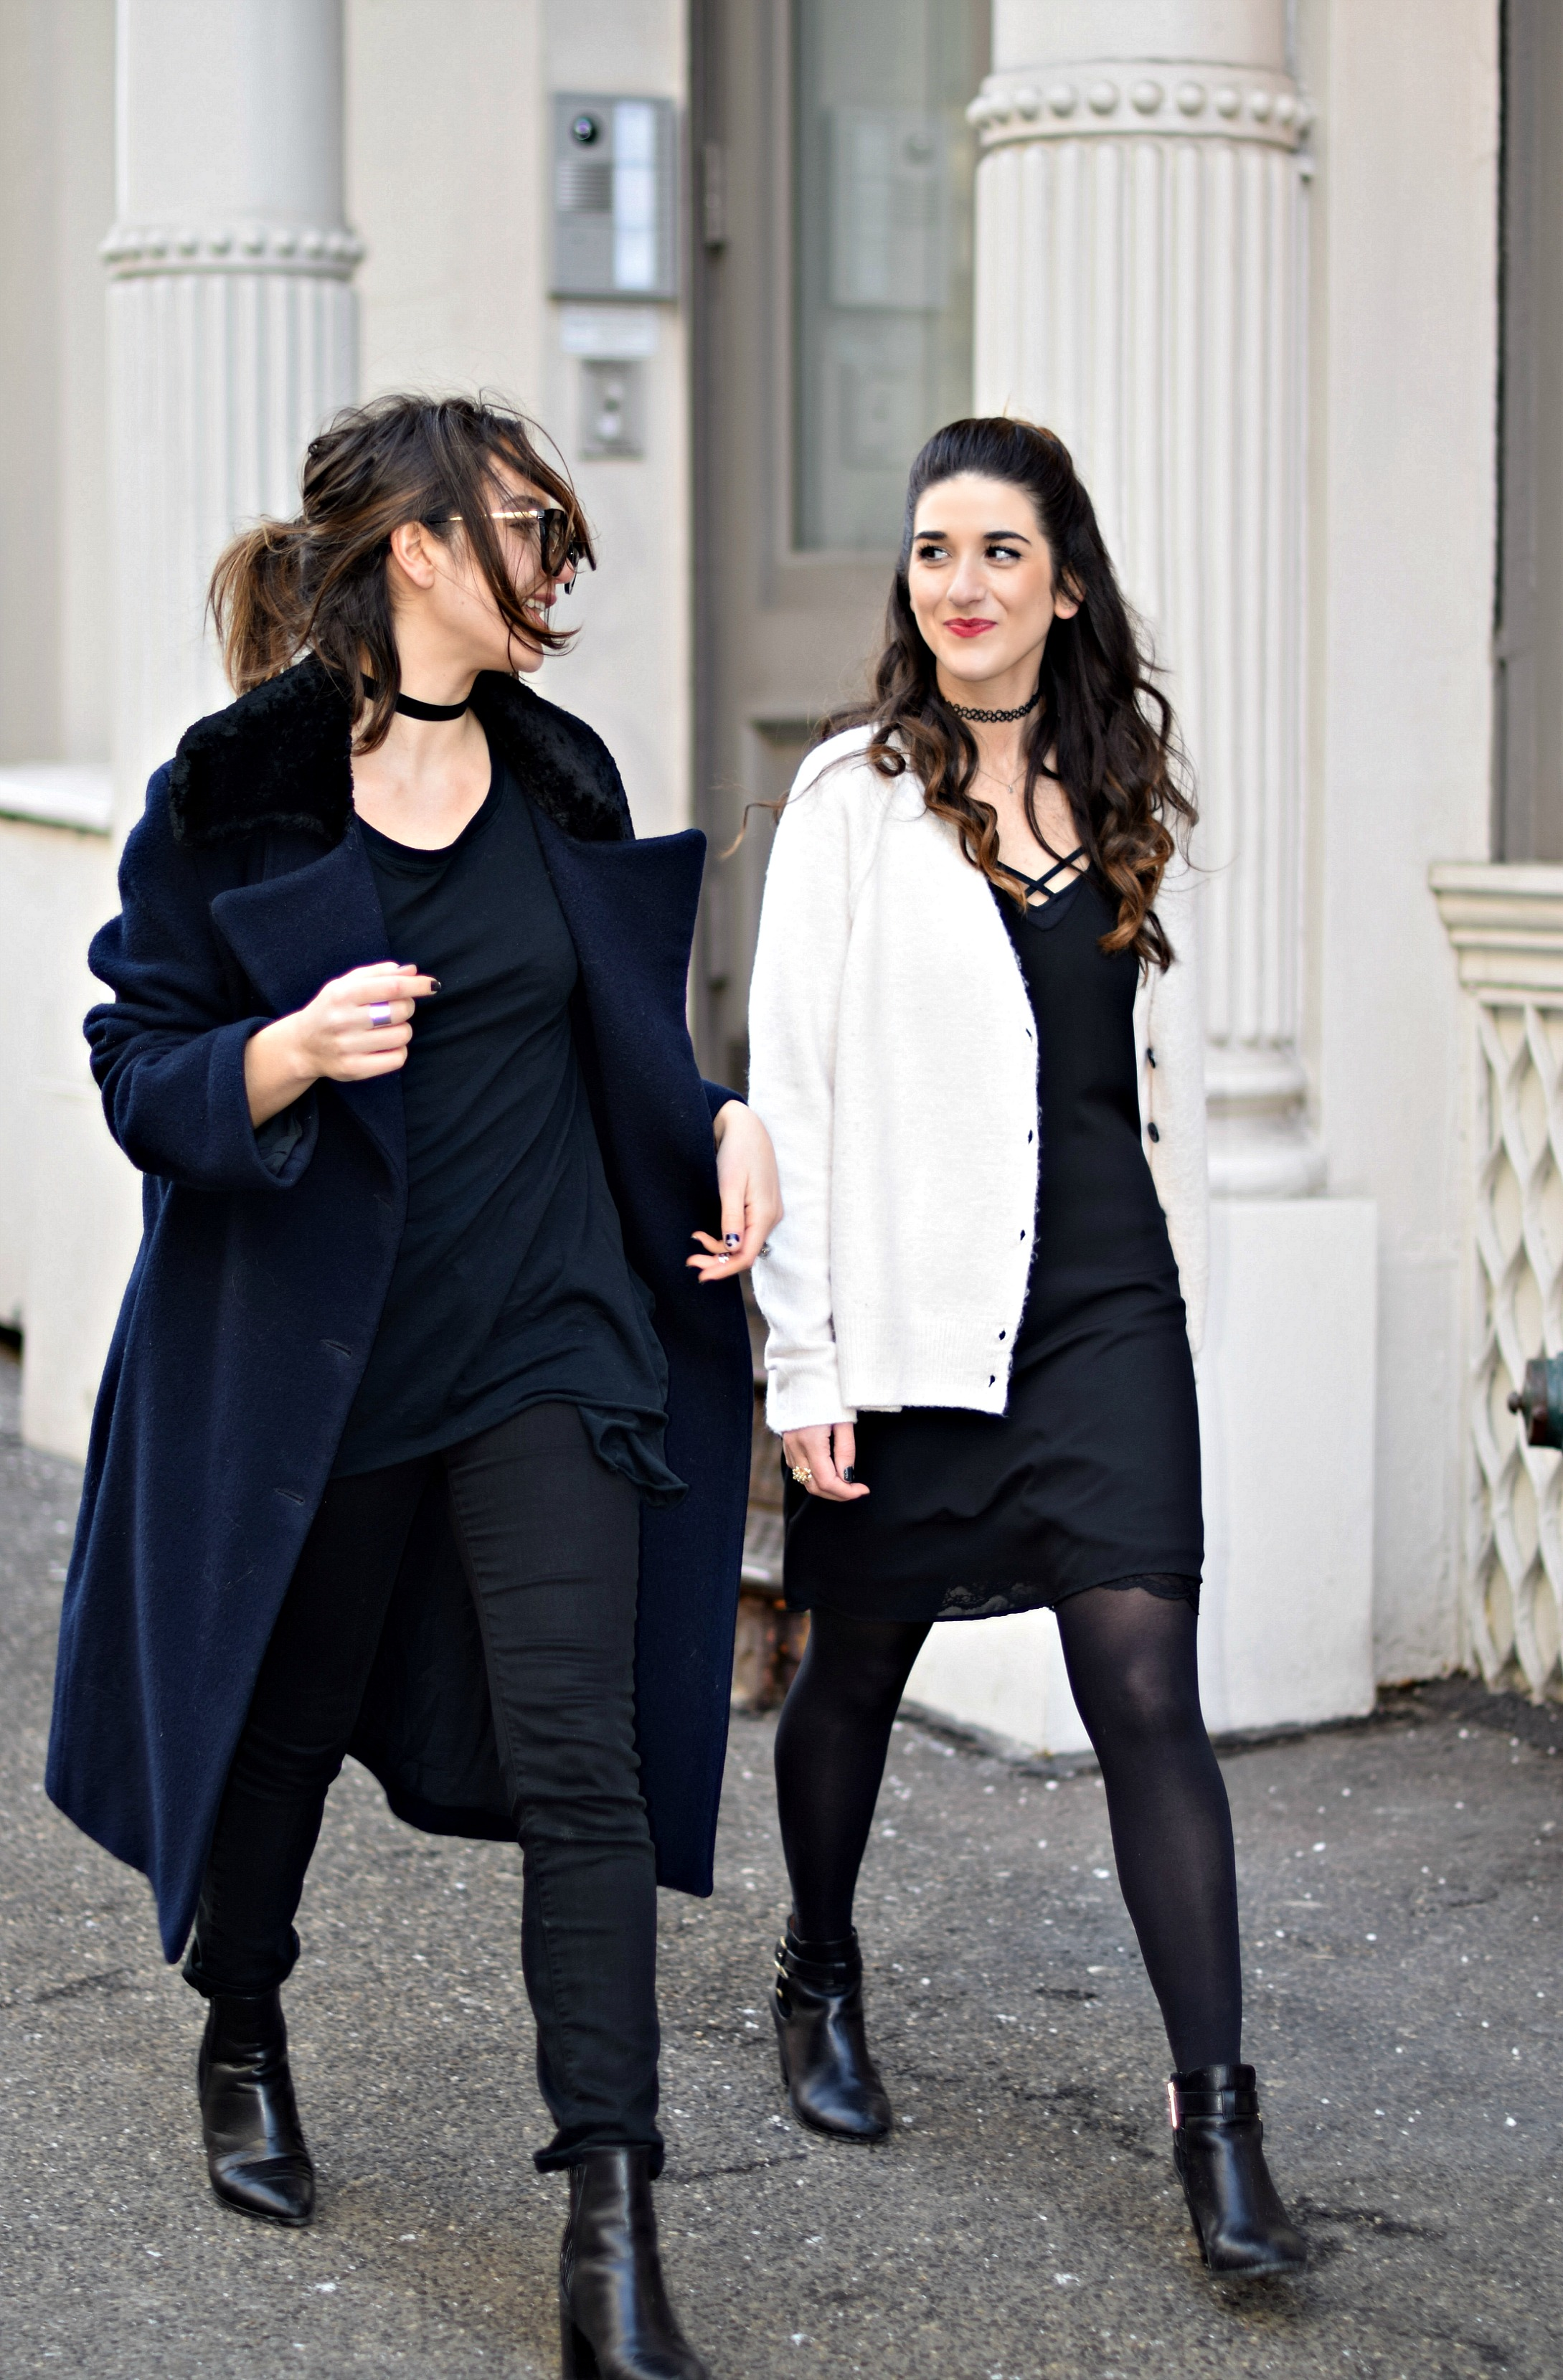 041195d8c2d Black Lingerie Dress White Sweater Louboutins   Love Fashion Blog Esther  Santer NYC Street Style Outfit